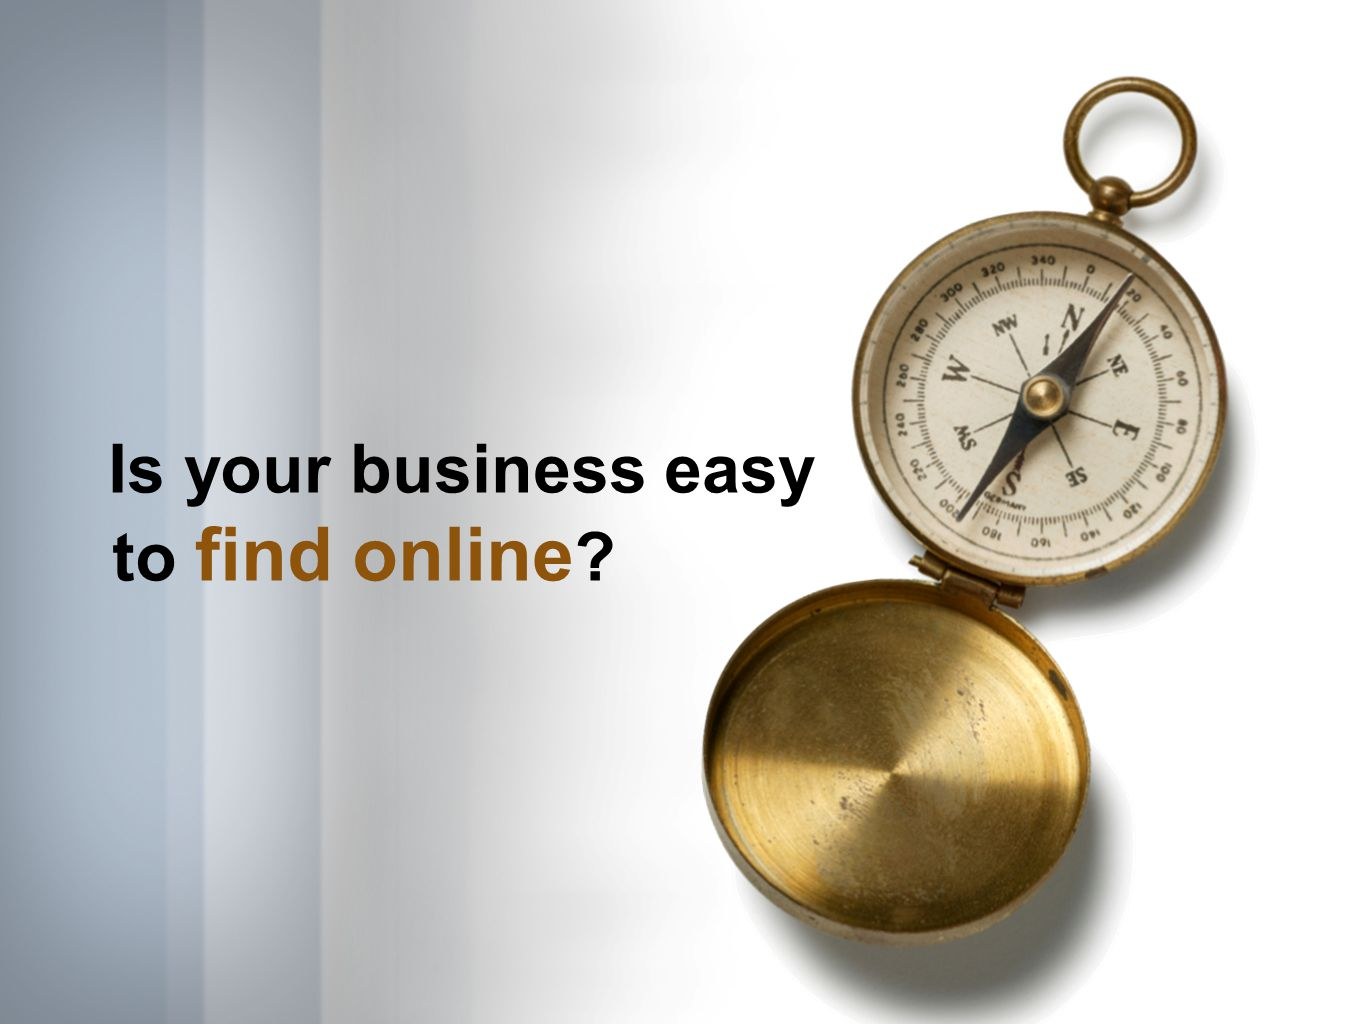 Is your business easy to find online